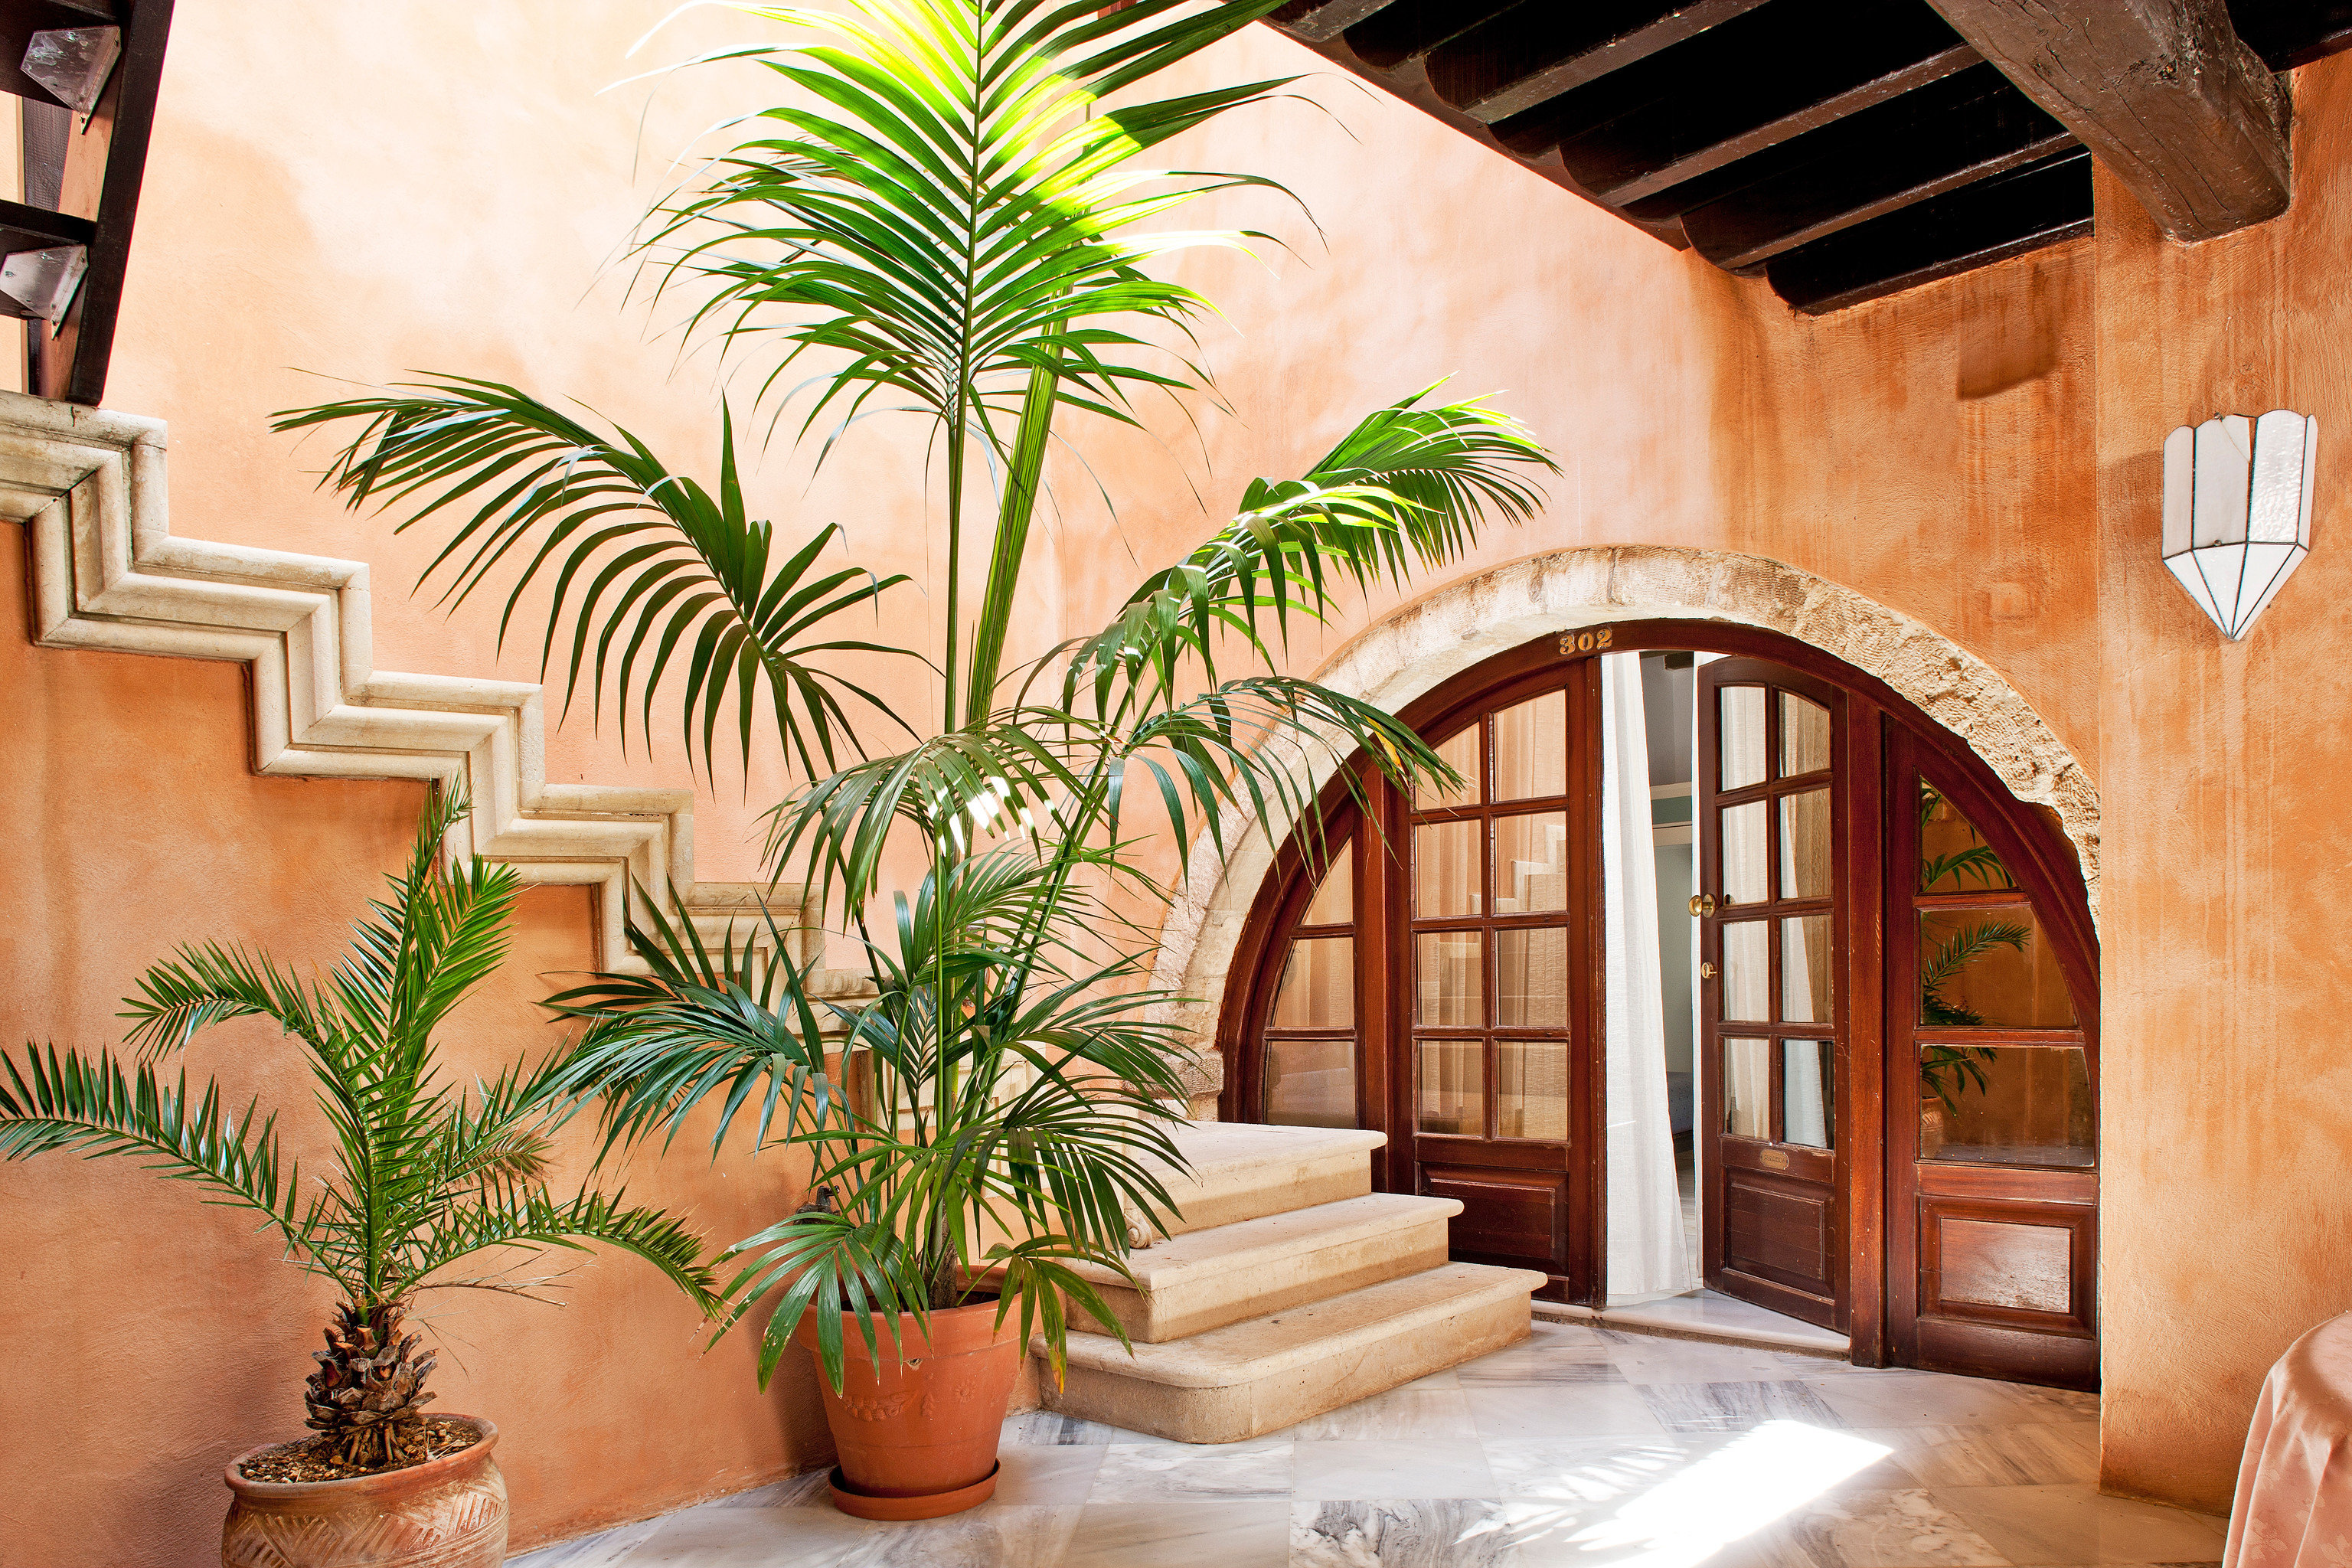 Cultural Family Historic Luxury Romantic Rustic plant property building home house arecales Courtyard hacienda arch Villa mansion